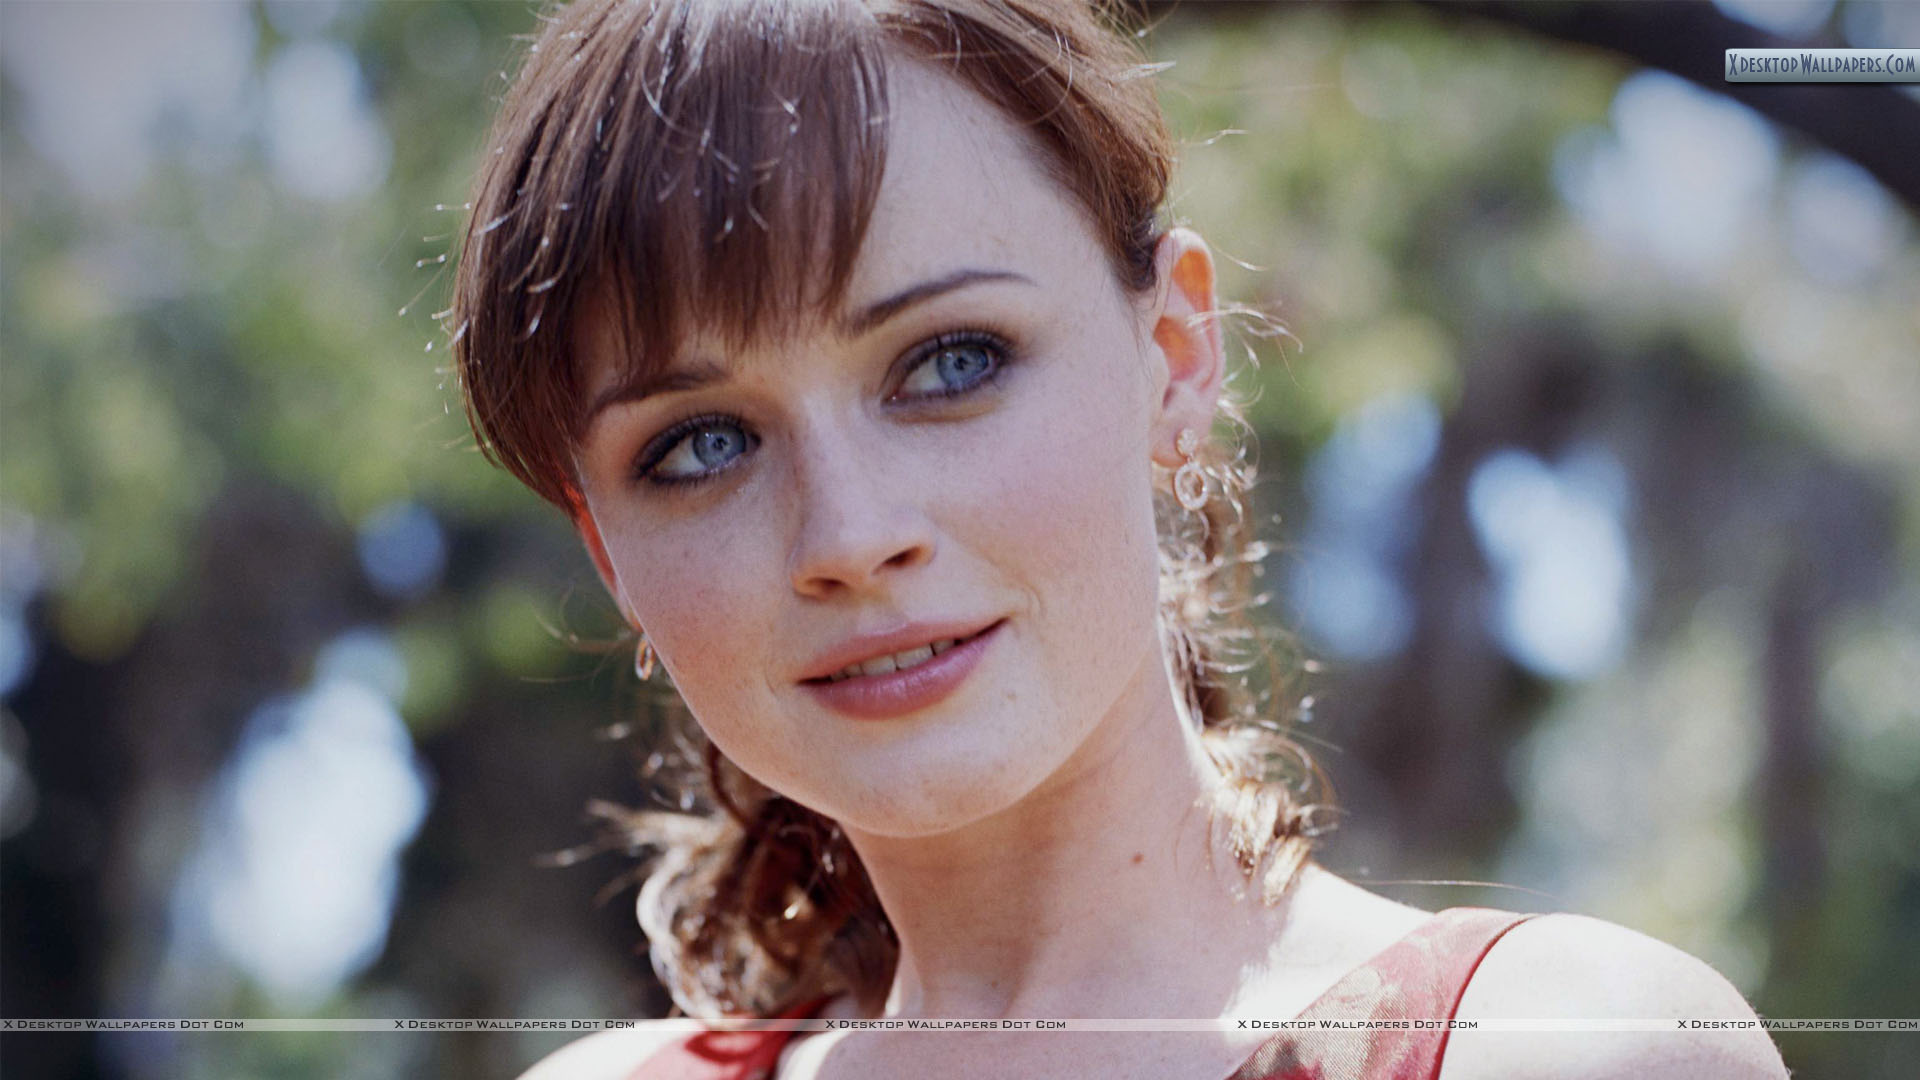 Alexis-Bledel-Cute-Smiling-Face-Closeup-1920%C3%971080-wallpaper-wp3602346